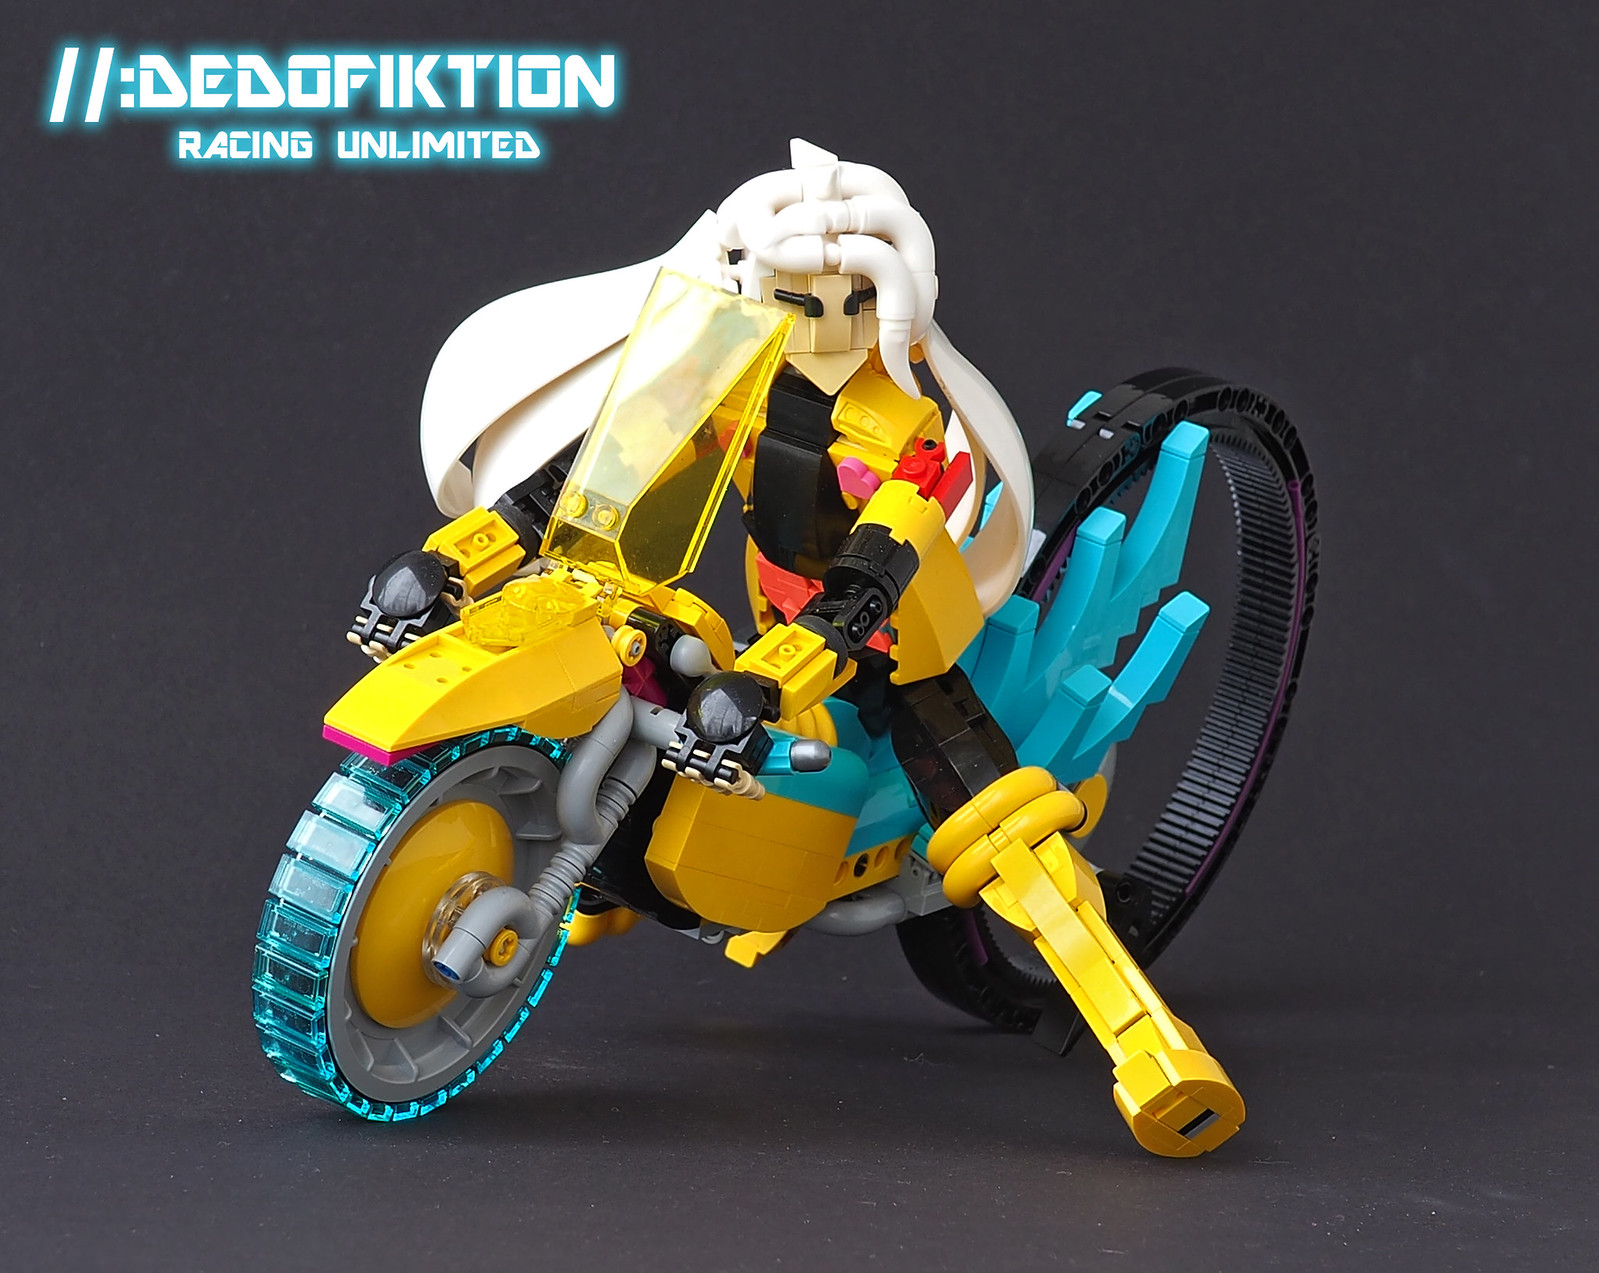 Dedofiktion Racing Unlimited Warpwheel Cryptobike